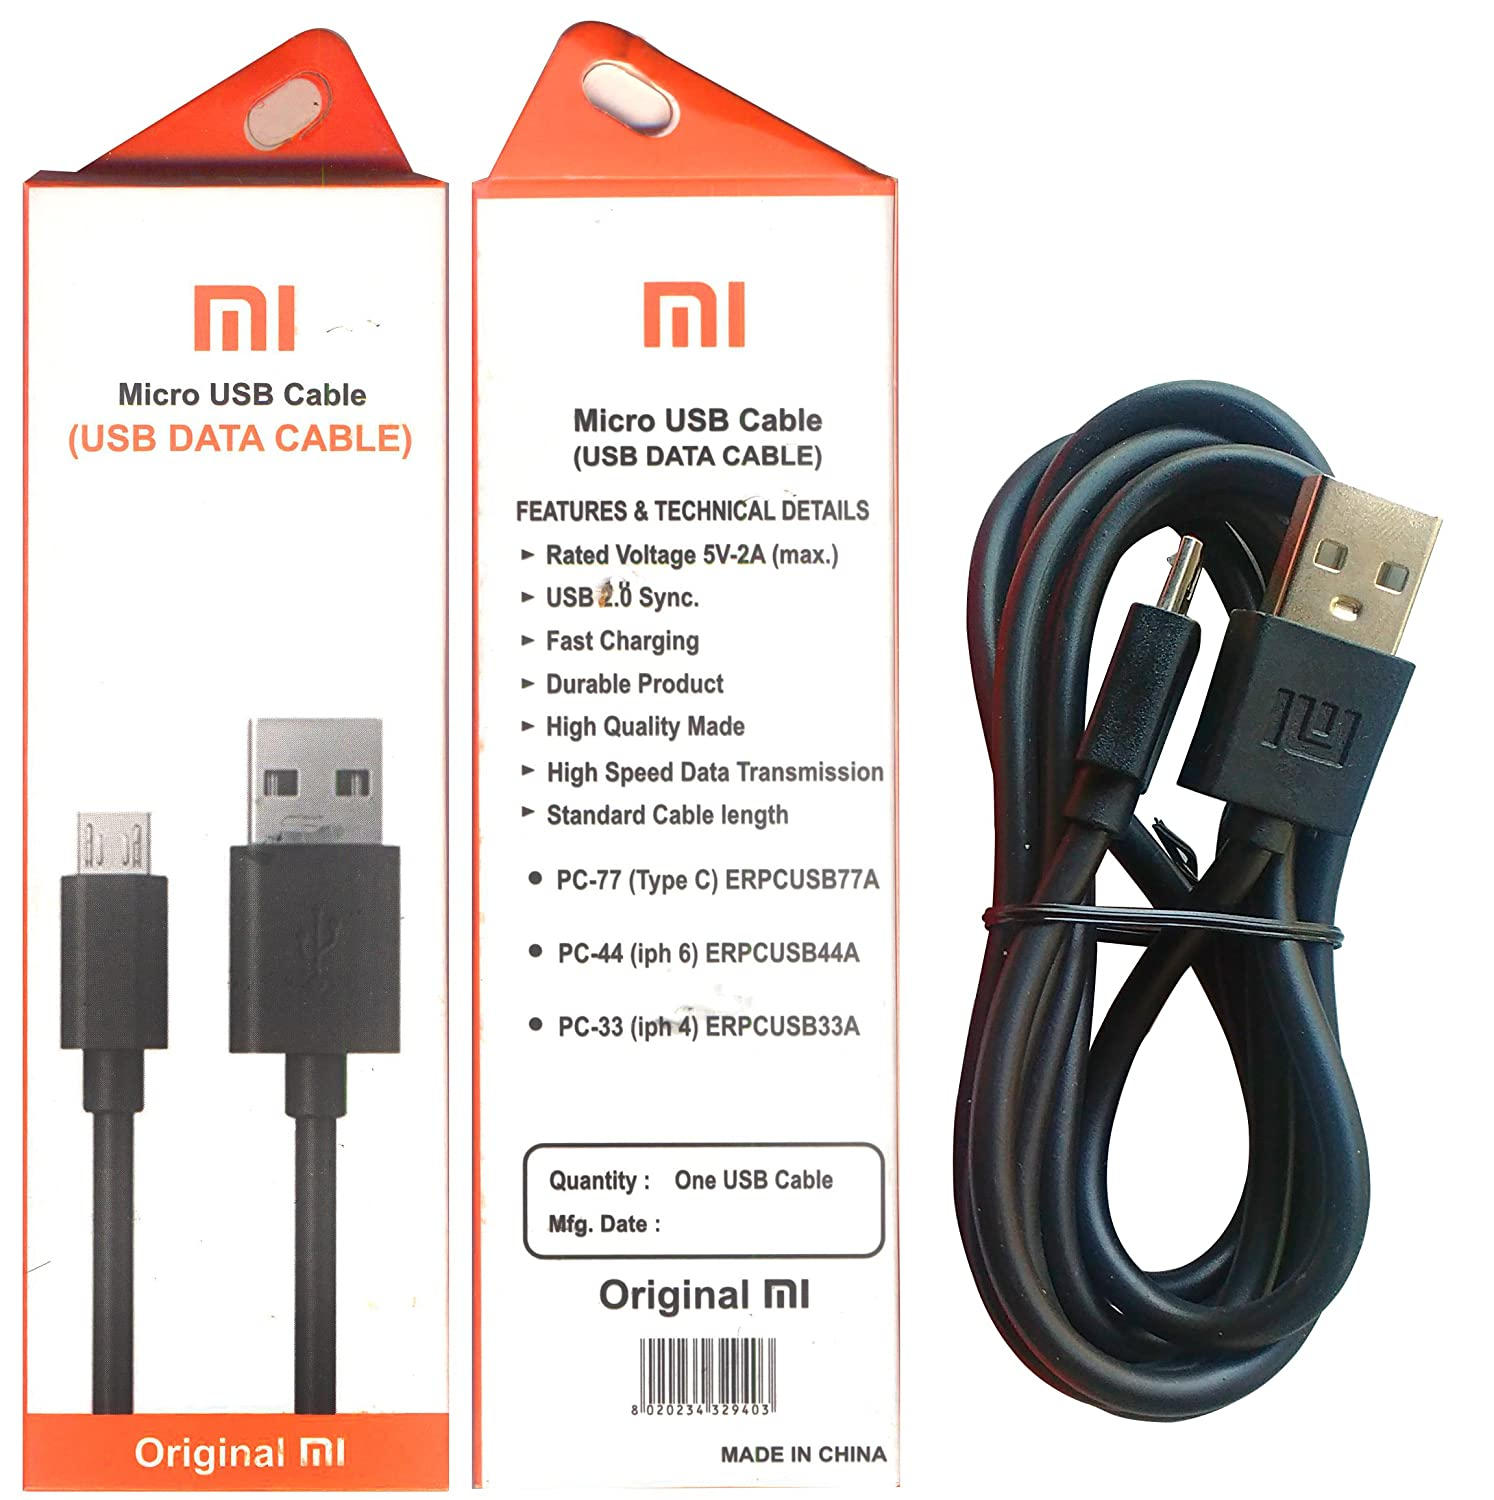 Ss Retail Charging Data Cable Usb For Xiomi Mi Xiaomi Kabel Original Micro Fast Redmi 4a Note 4 3s Prime 3 Max